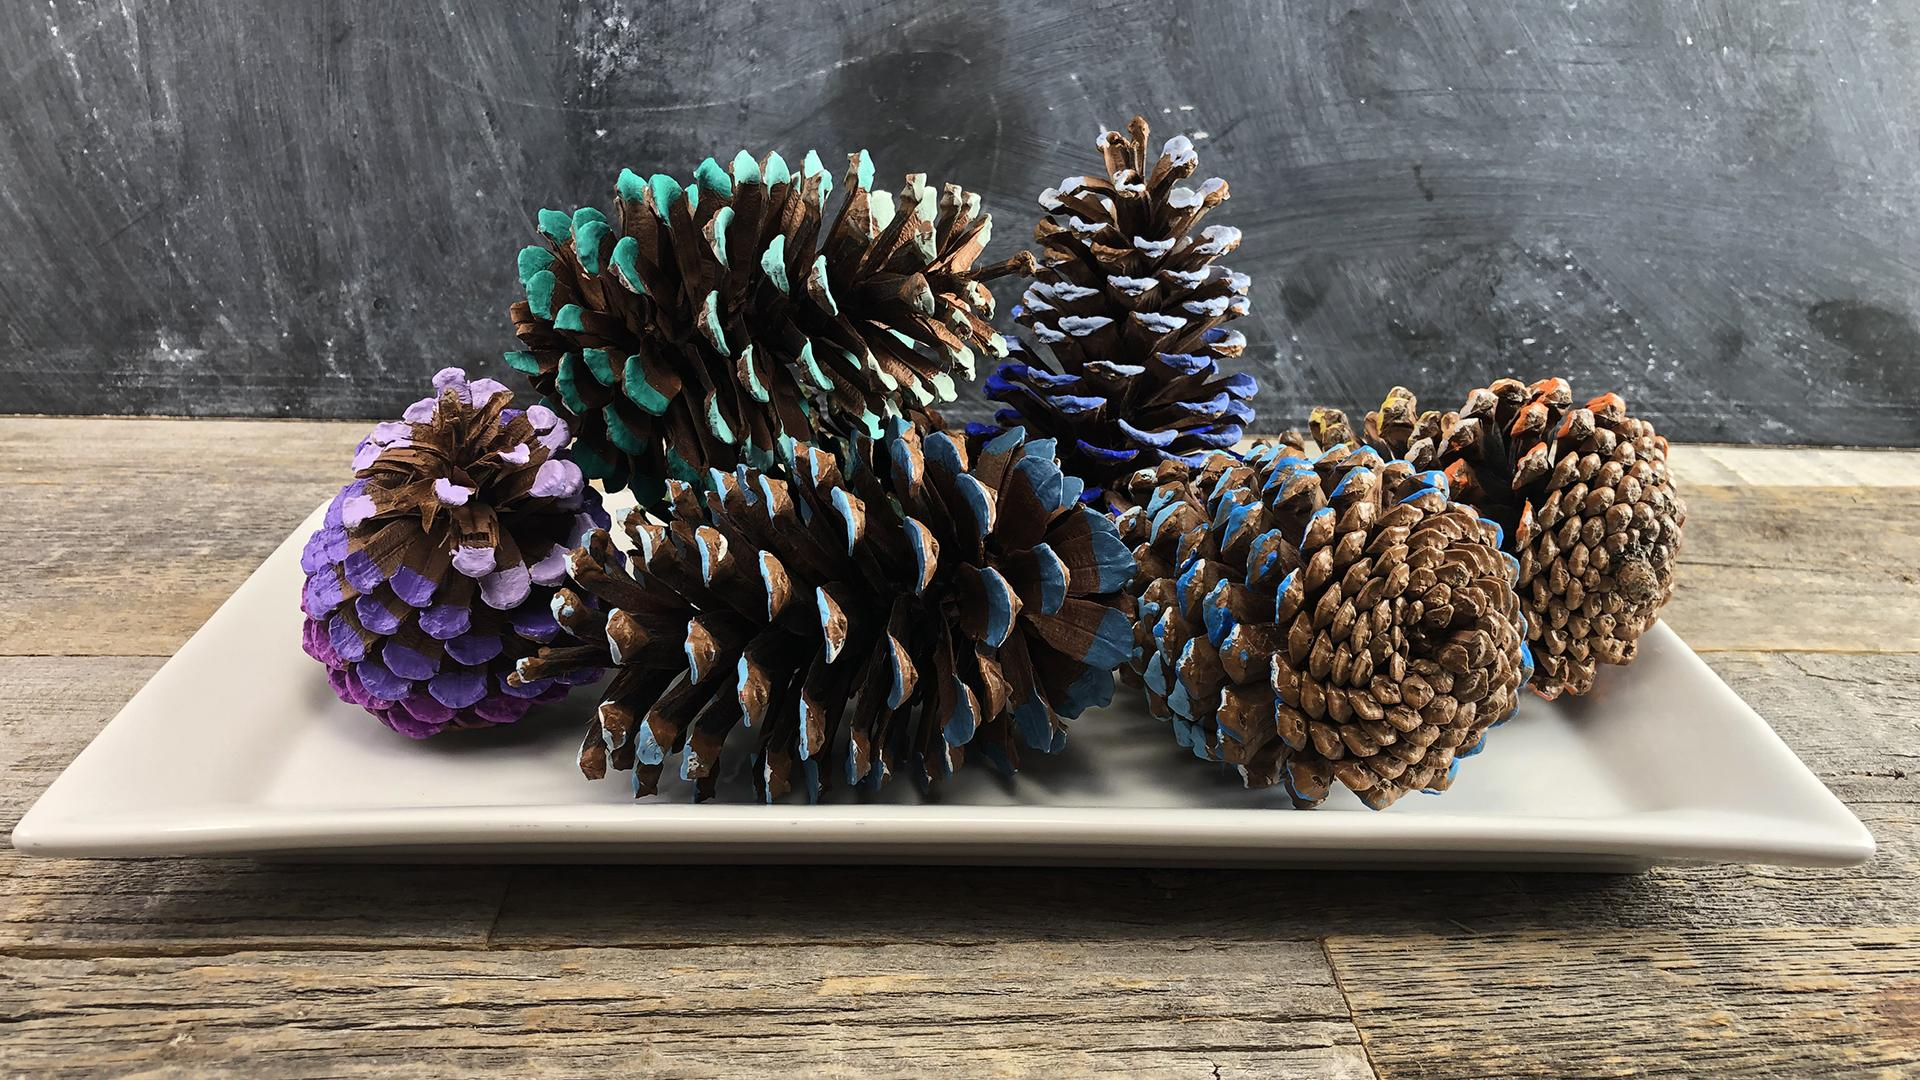 How To Diy Ombre Pine Cones In 3 Simple Steps Rachael Ray Show